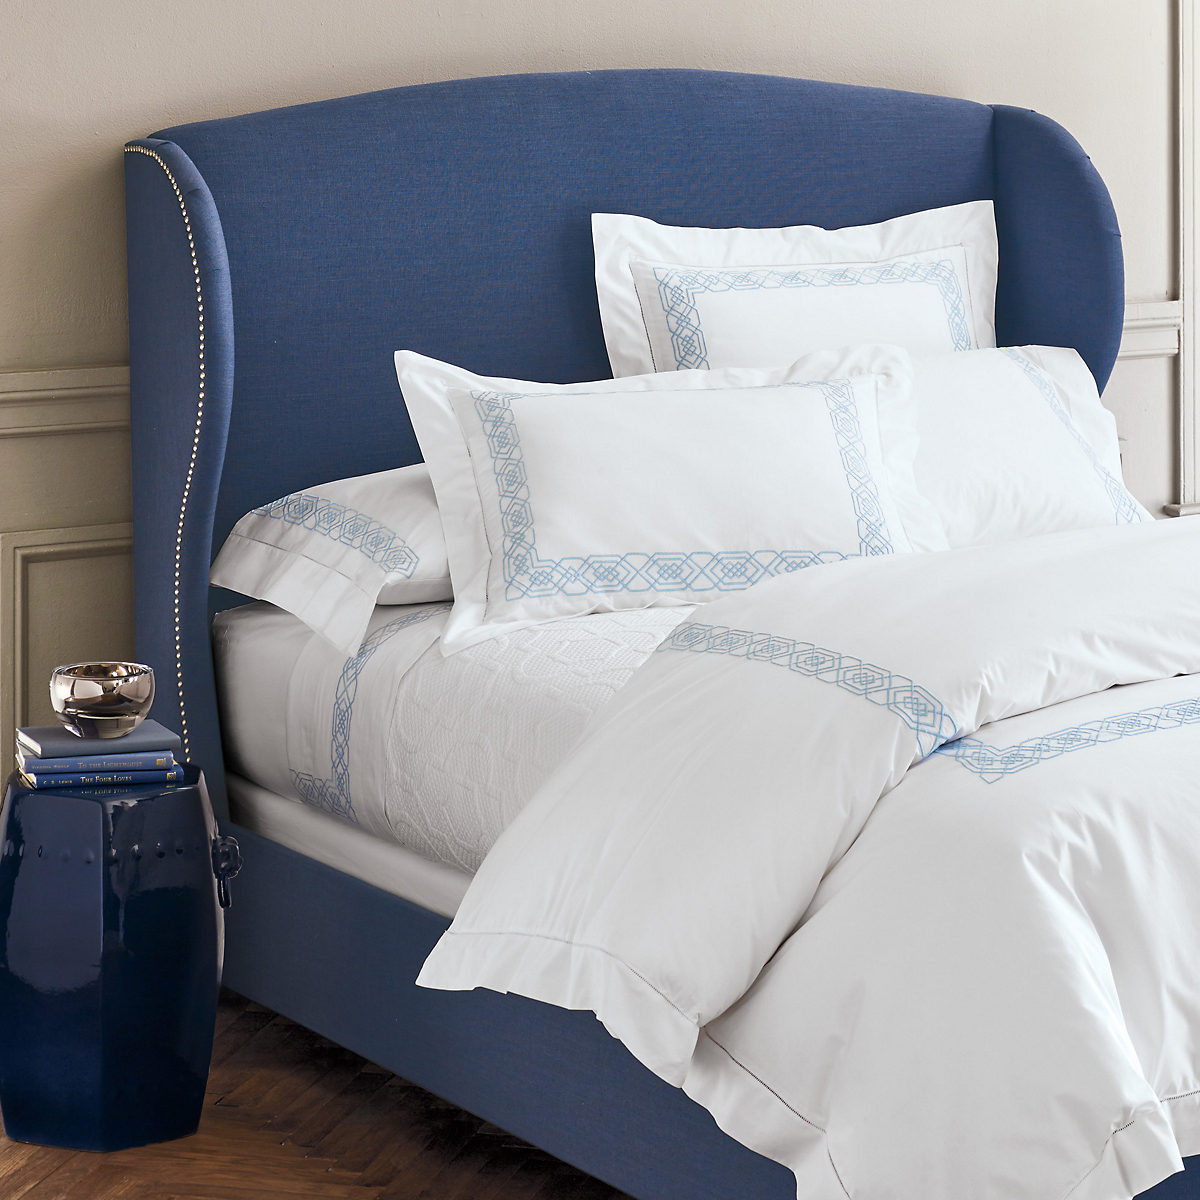 Kensington Bedding